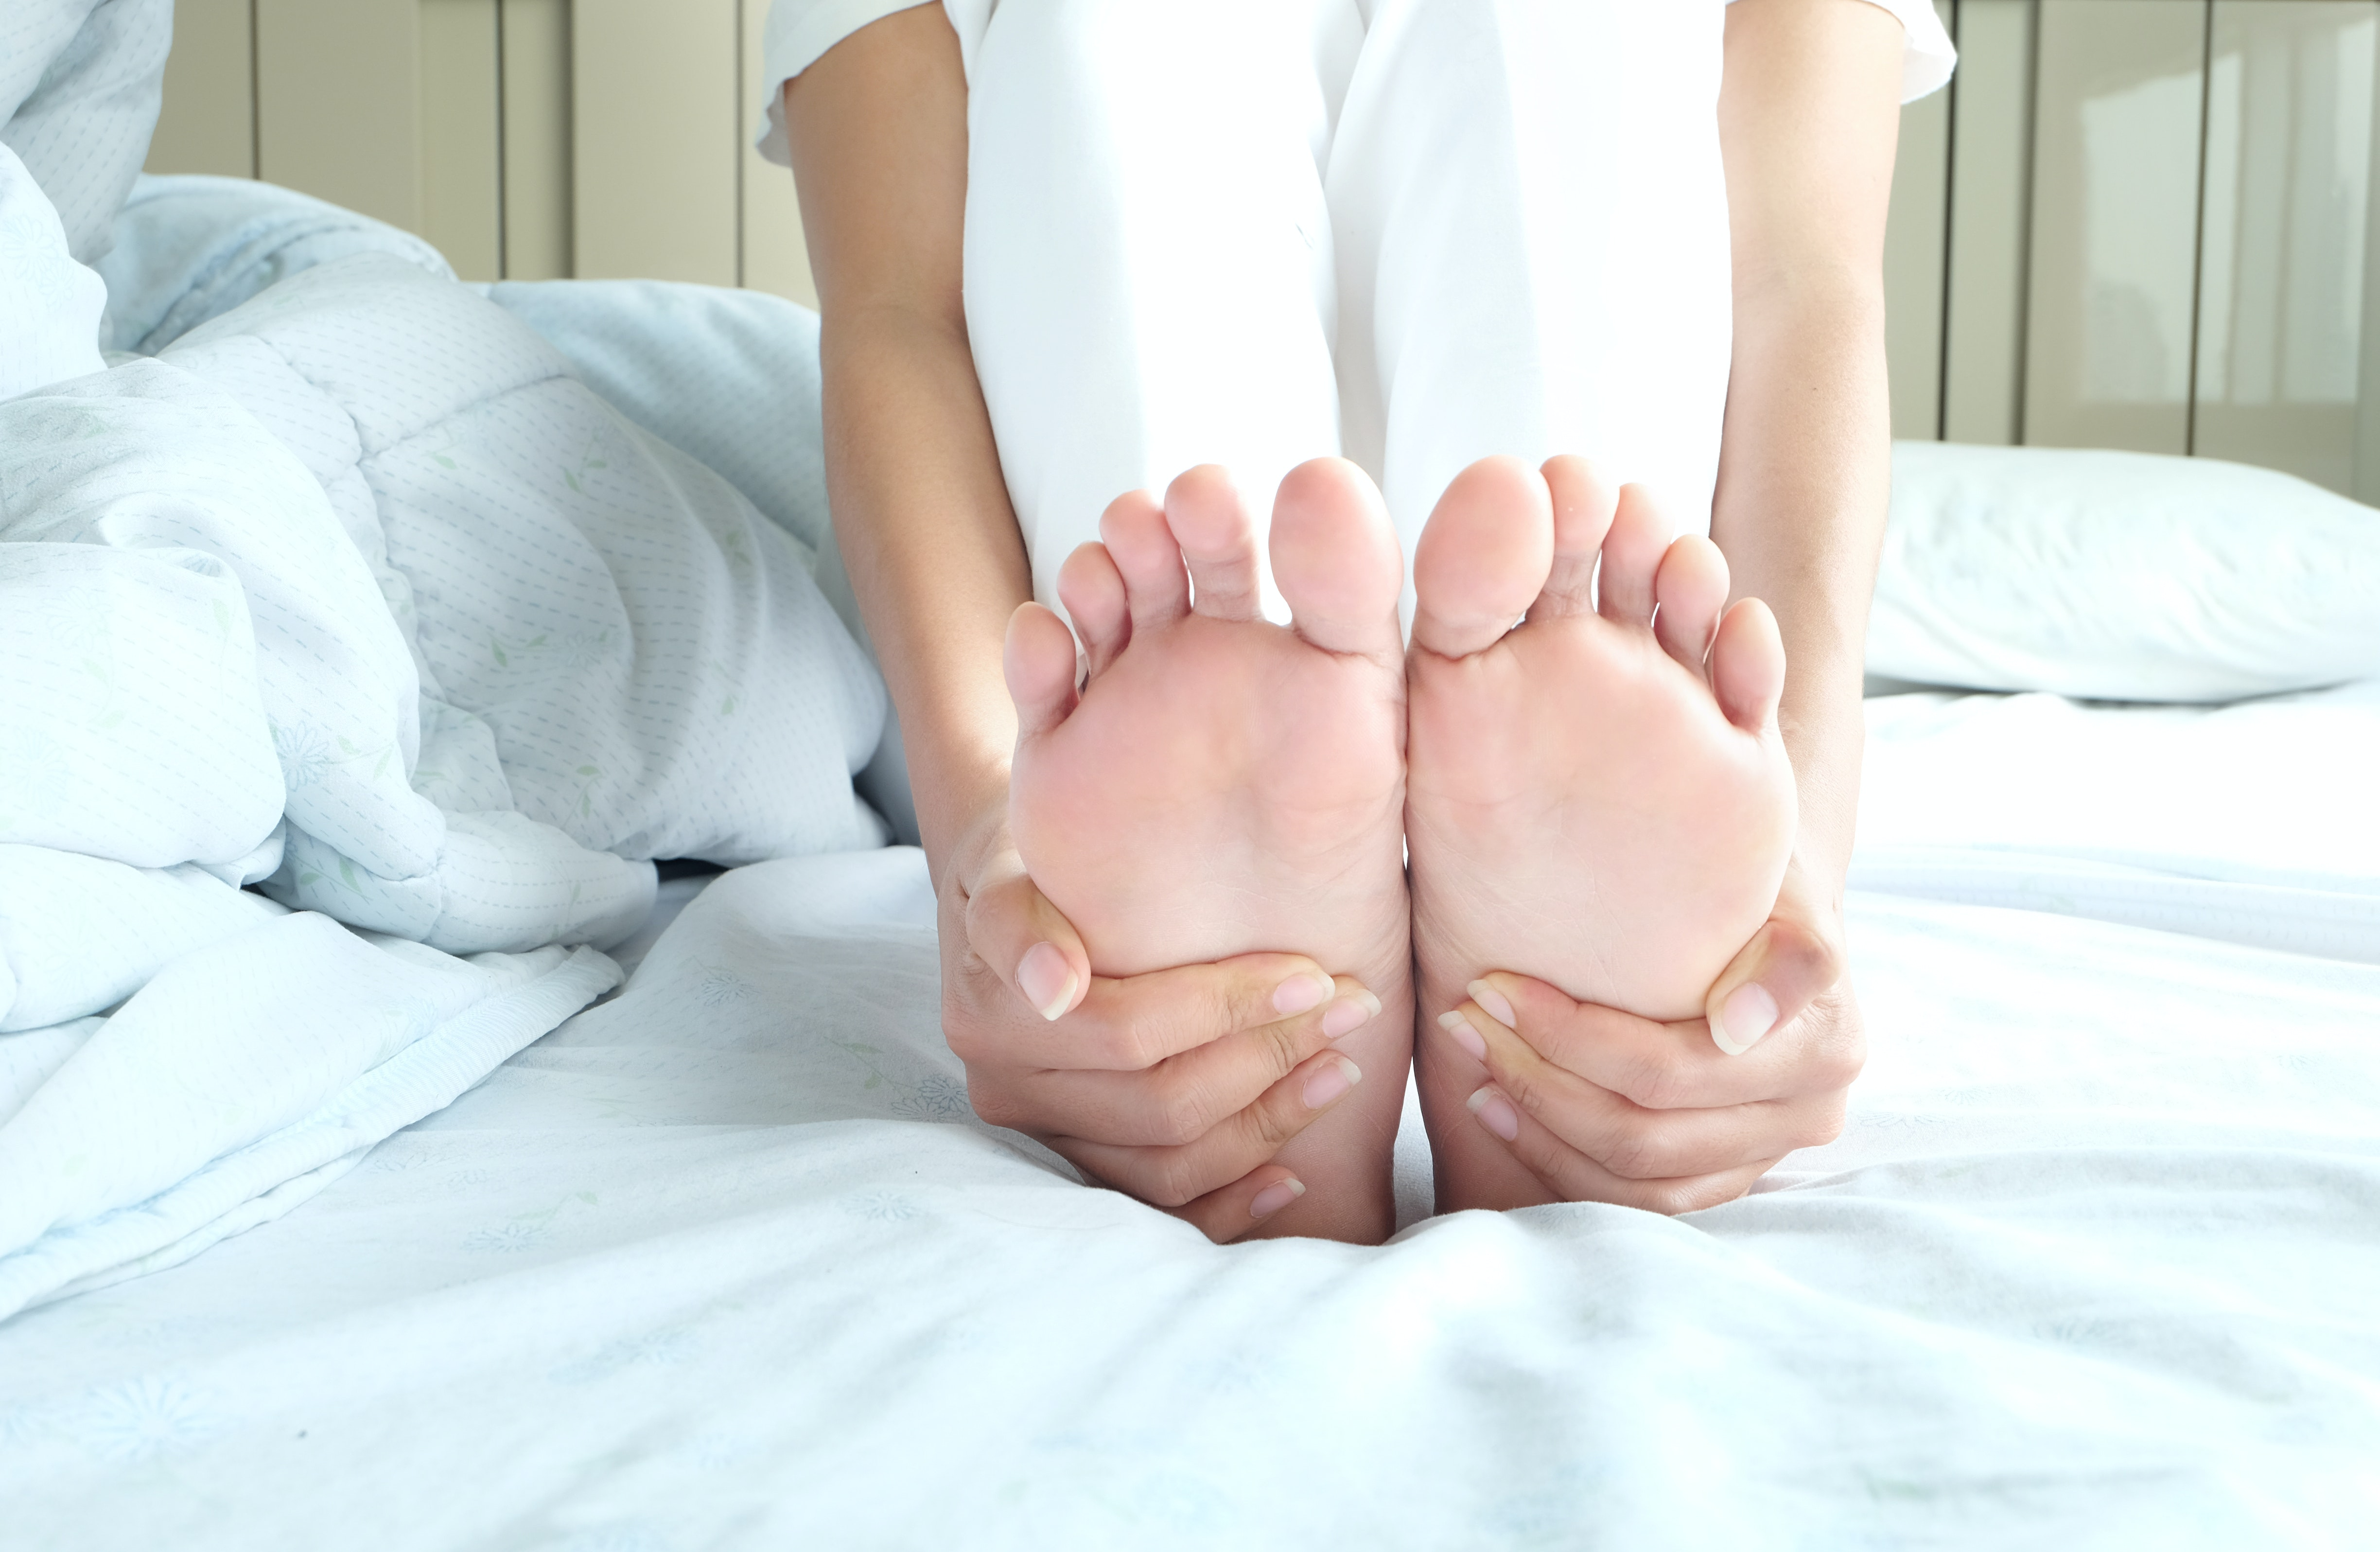 An image depicting a person suffering from pain in the sole of the foot symptoms